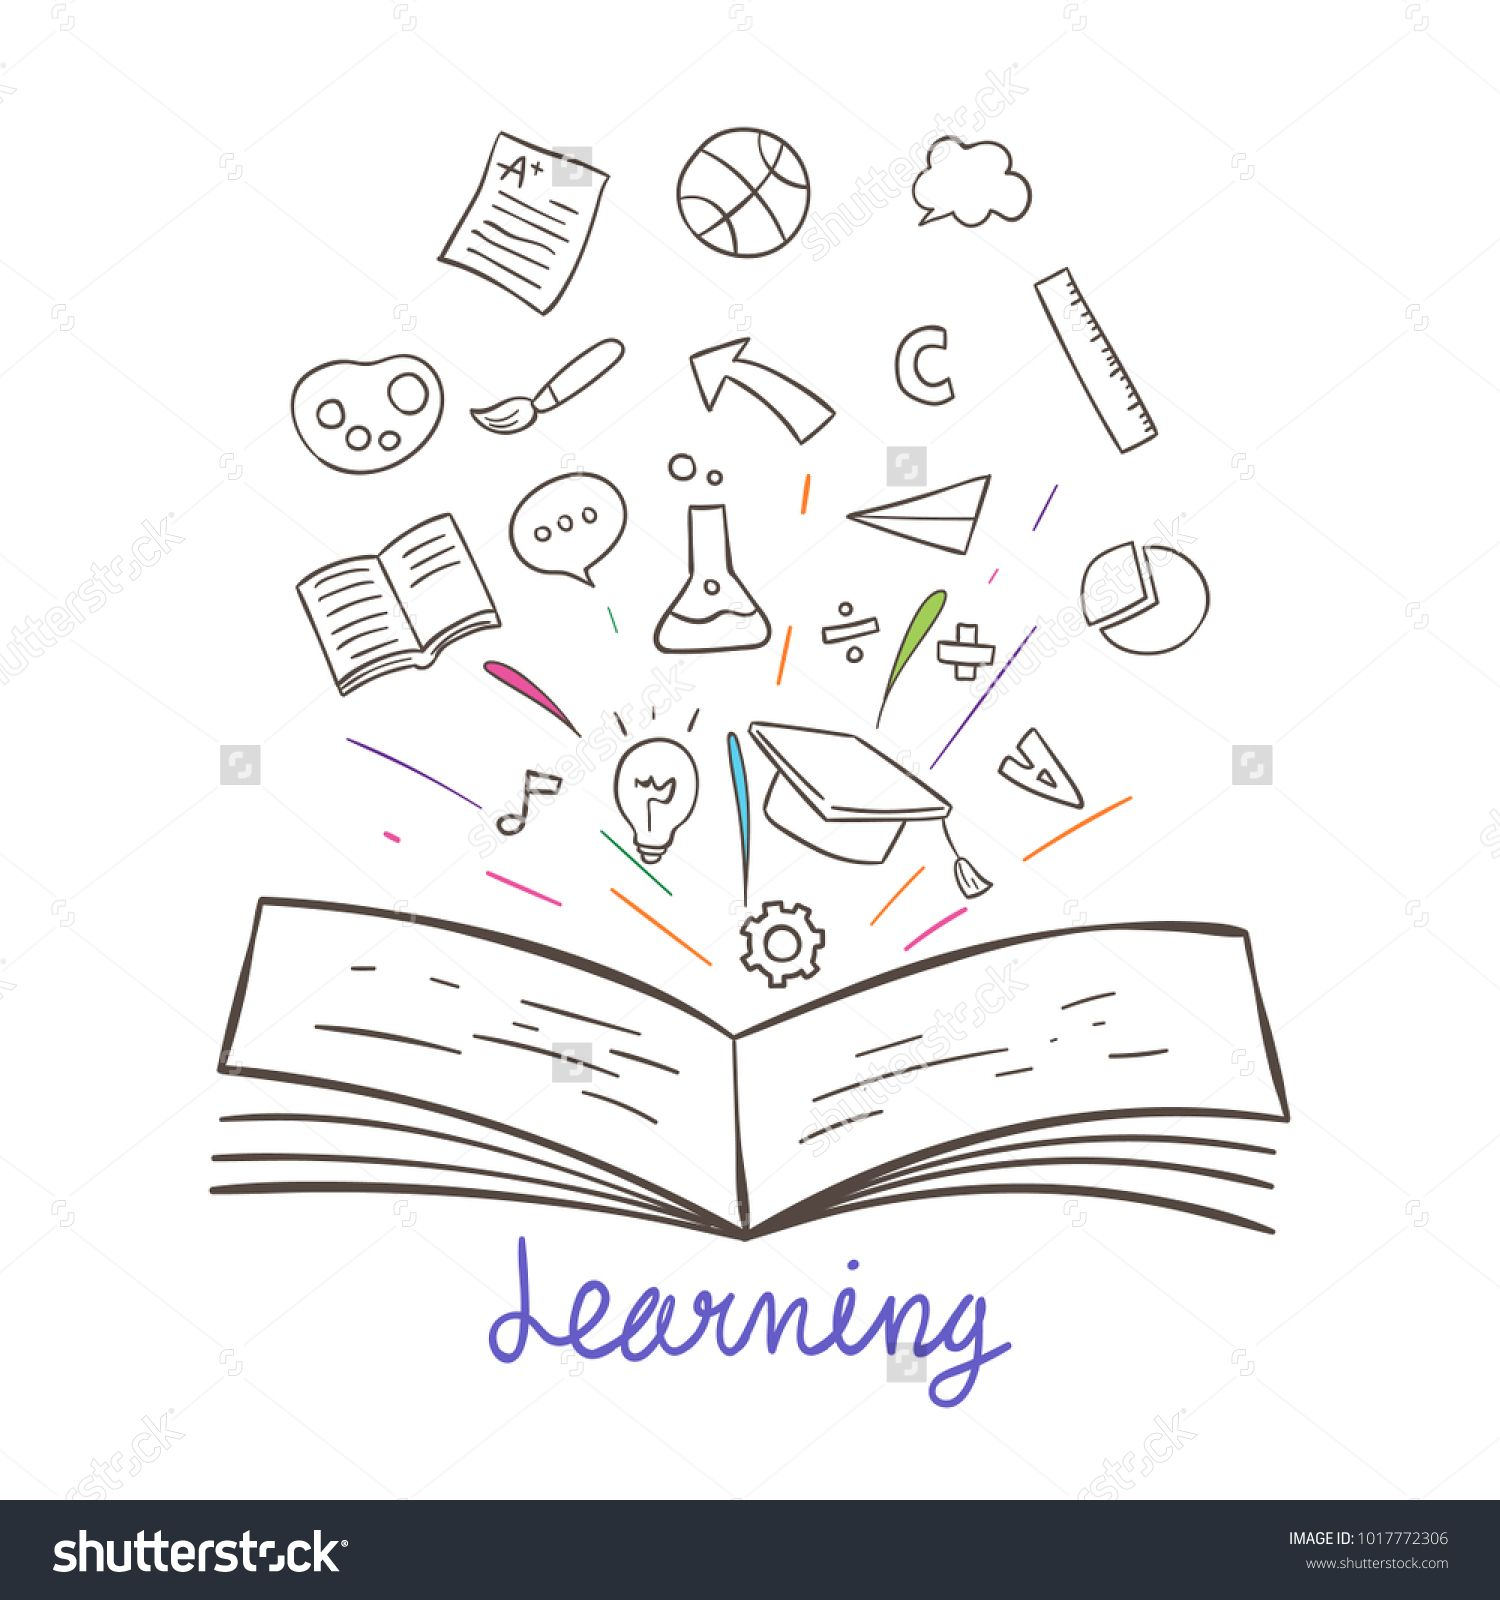 Hand Draw Vector Illustration Concept Education Sketch Outline Book Open And Element Decora Open Book Drawing Hand Drawn Vector Illustrations Hand Drawn Vector